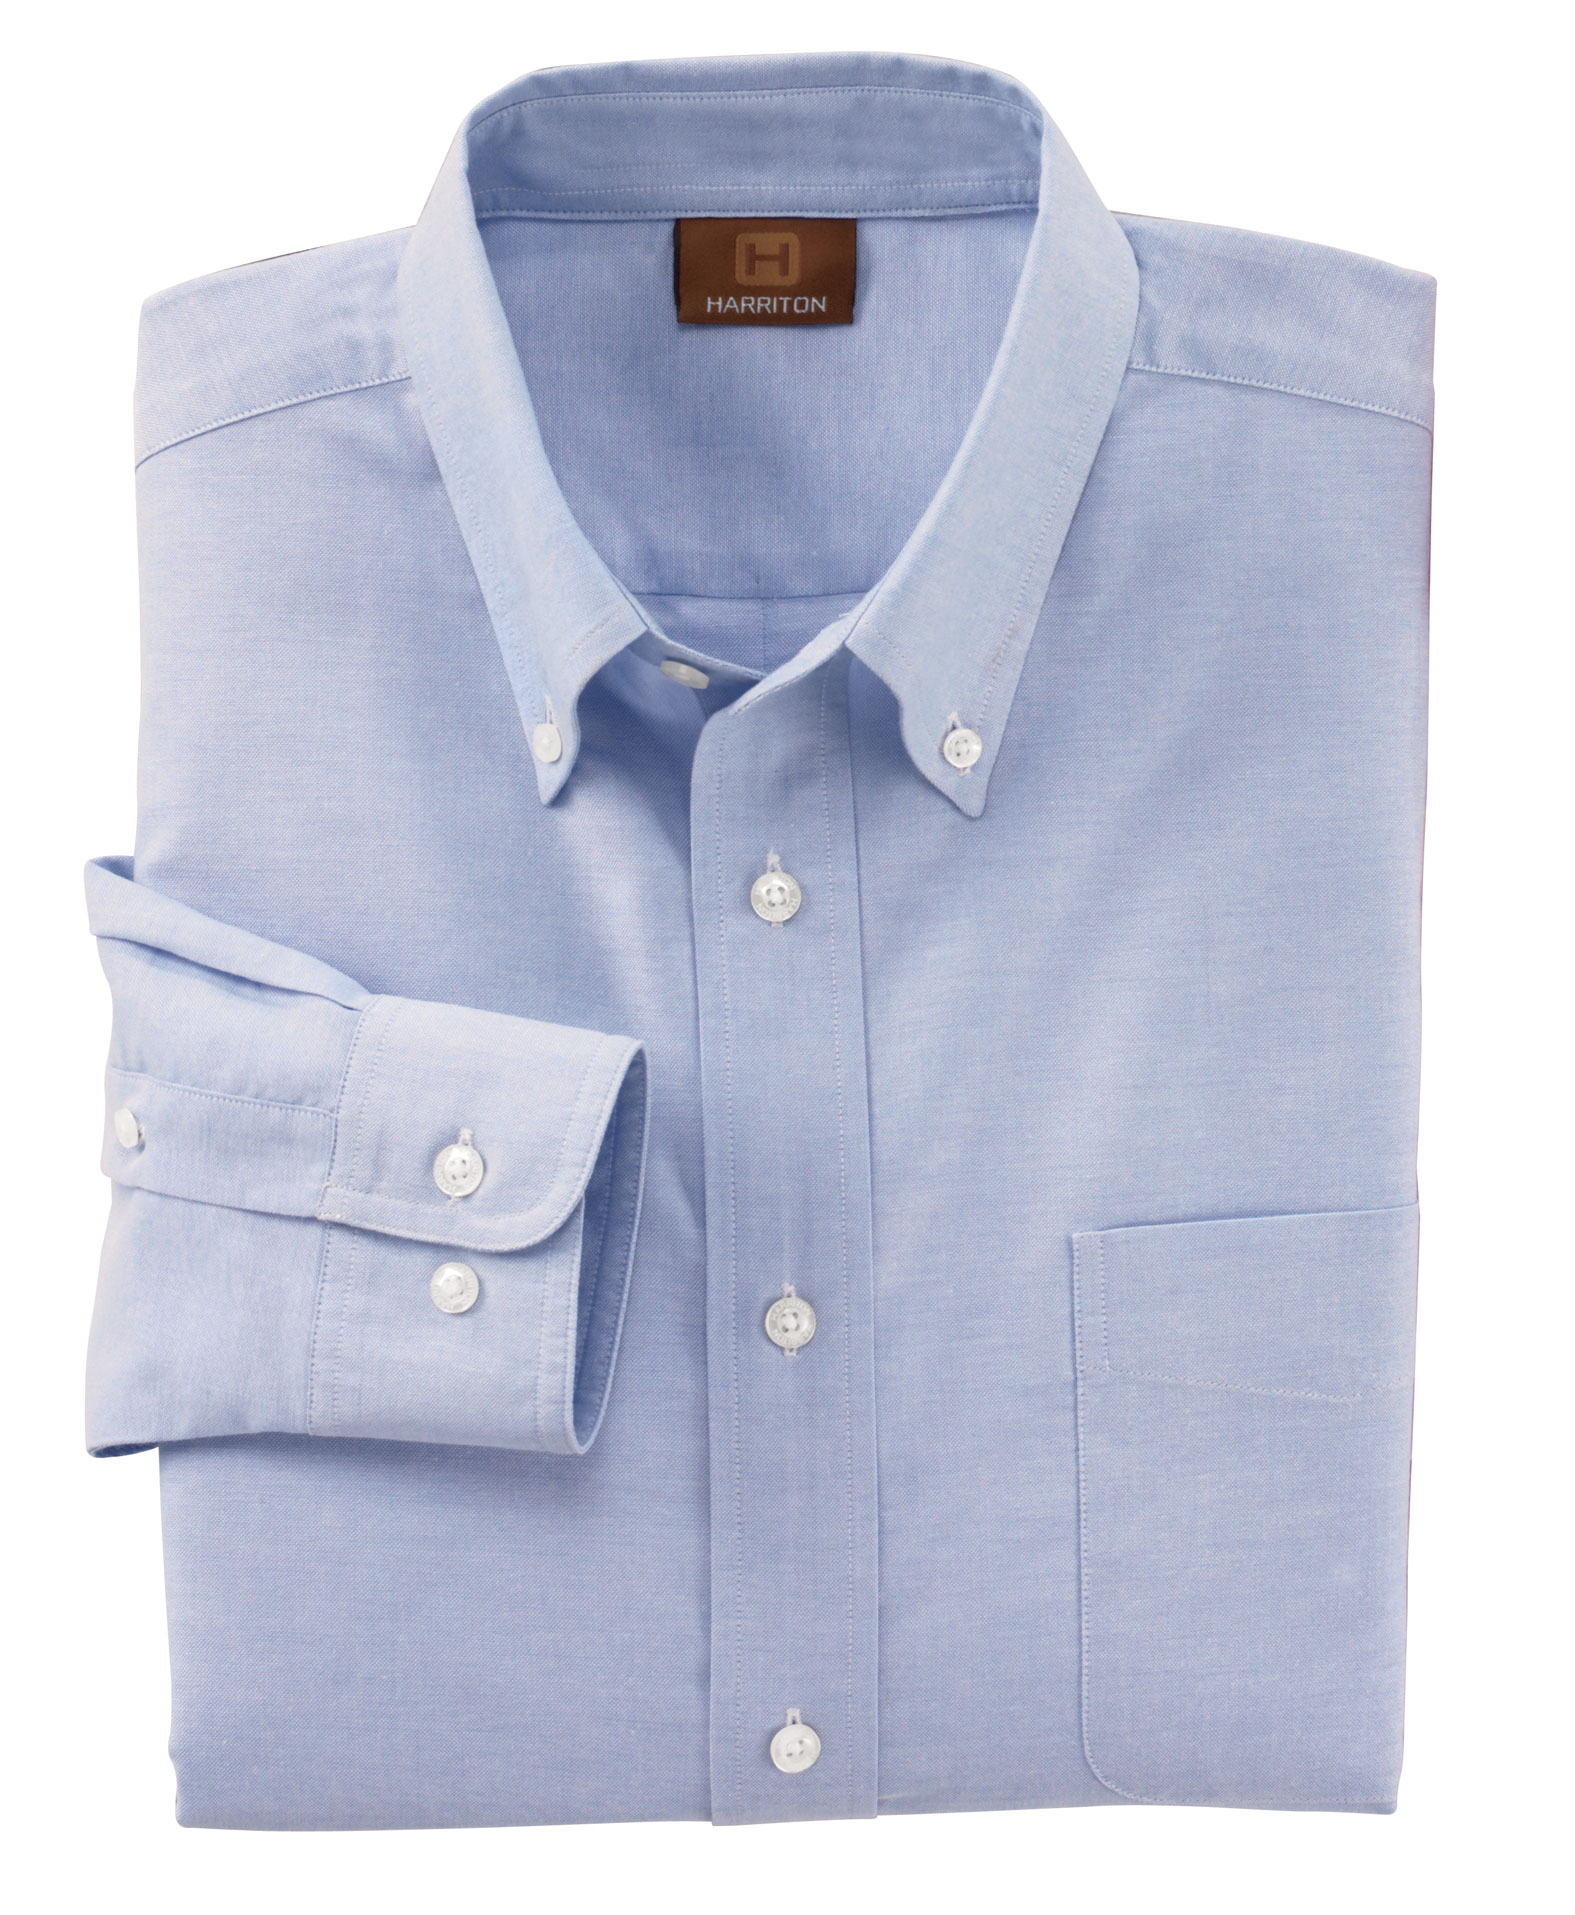 Men's Long Sleeve Oxford Shirt with Stain-Release